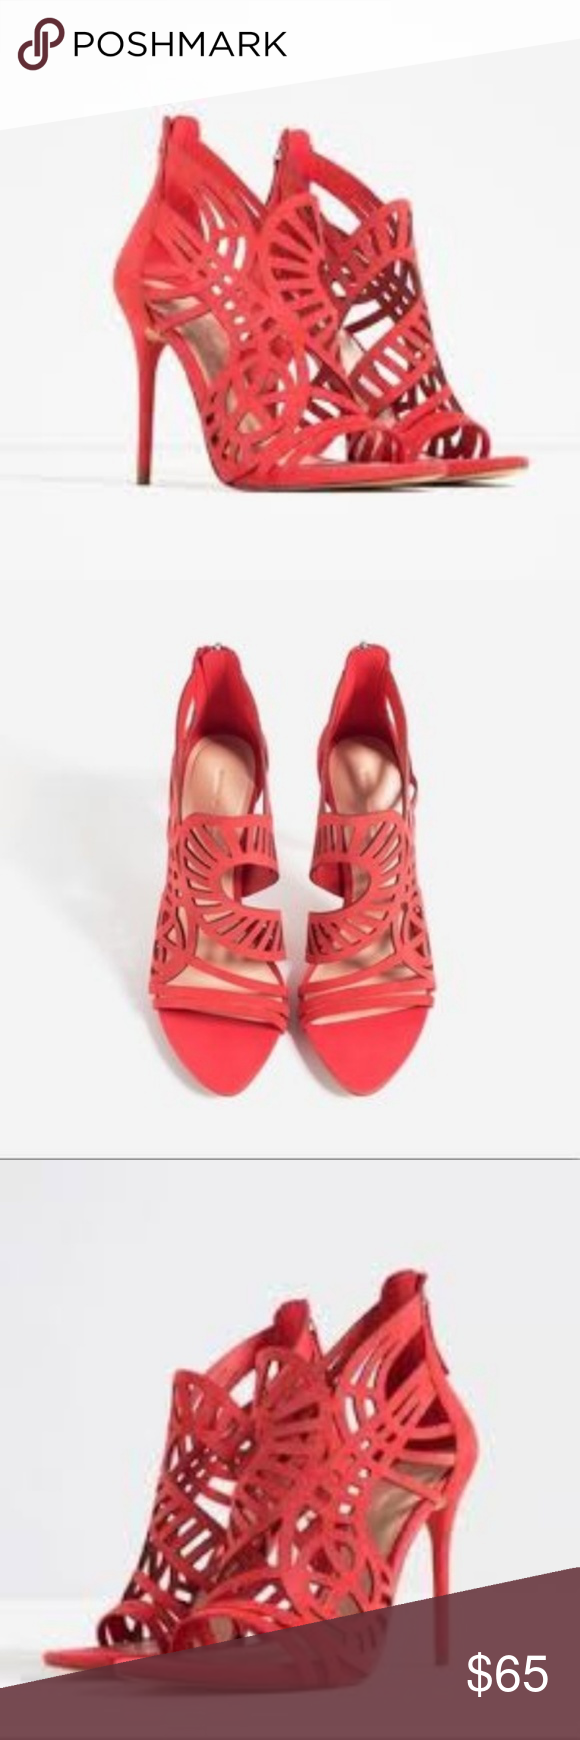 c4fdd6af1b8 Zara Coral Heels Brand new with tags. Never worn. Authentic. Color is more  coral. Heel is 4 inches. Feel free to make me an offer! Zara Shoes Heels